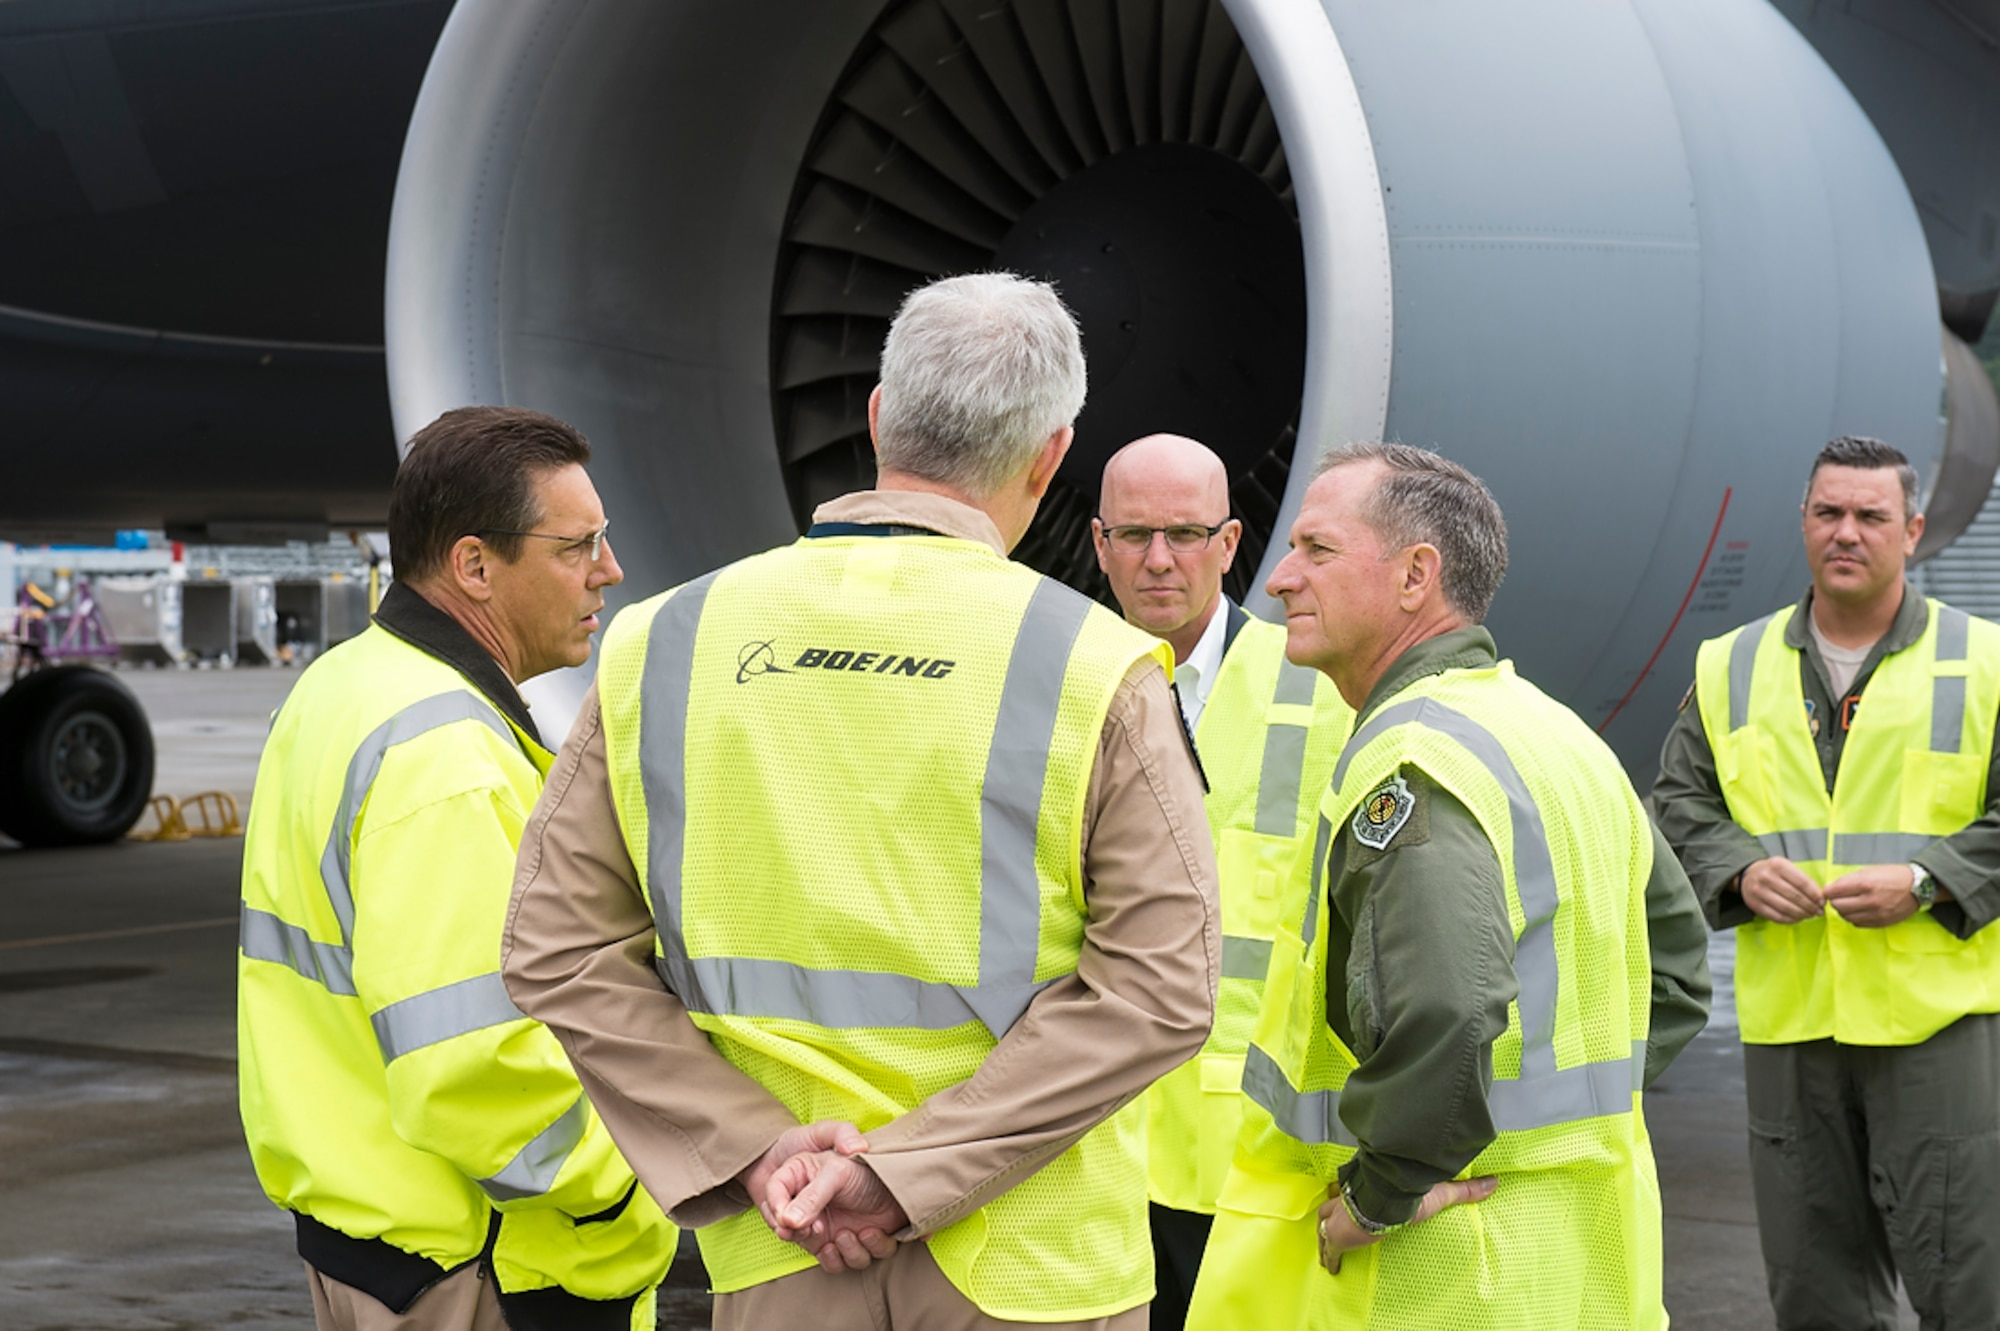 Chief of Staff of the Air Force Gen. David L. Goldfein visits Boeing Field in Seattle, where the KC-46 Pegasus tanker is under development. The KC-46 program achieved an important milestone July 6, 2018, at Boeing Field, with completion of the final flight tests required for first aircraft delivery to the U.S. Air Force. (Courtesy photo)